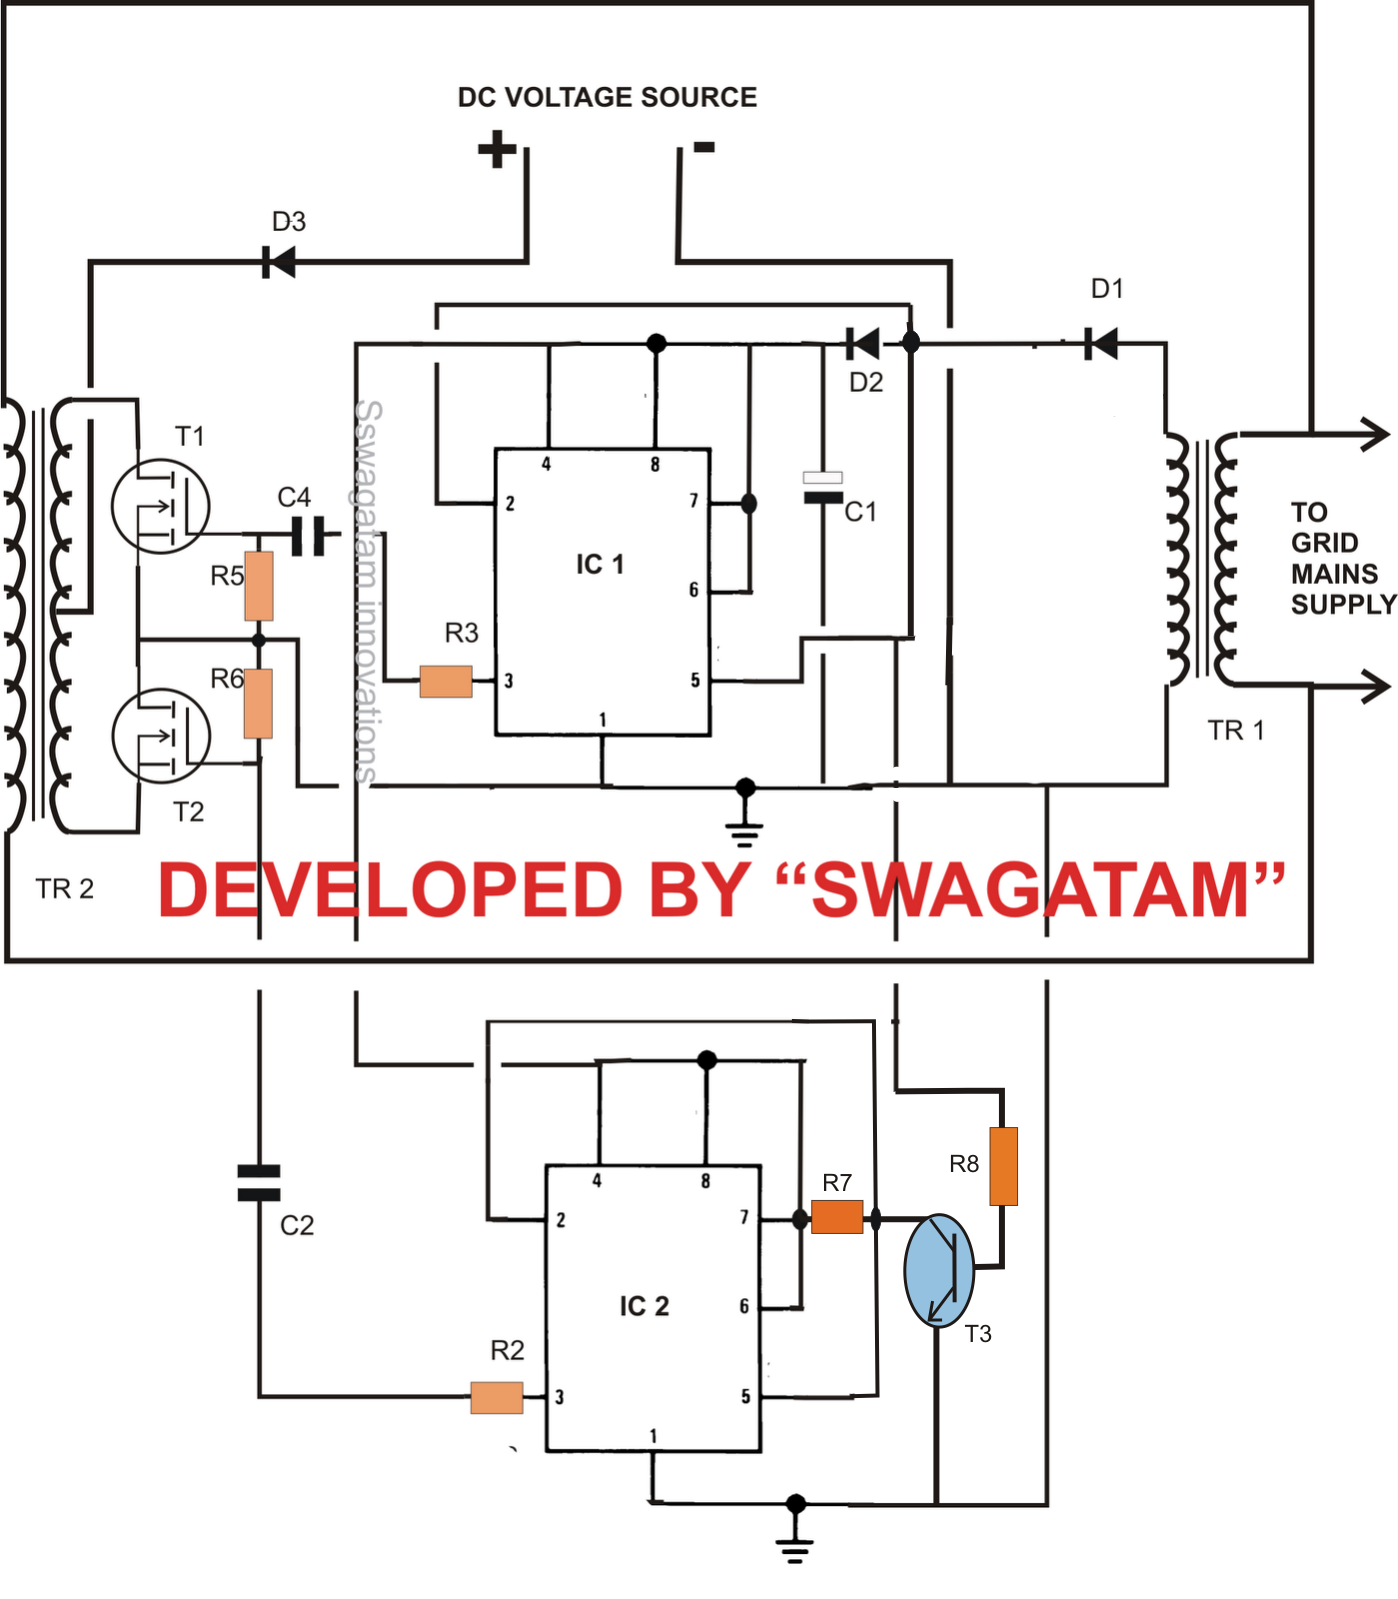 Solar Inverter Free Circuit Diagram 5000 Watt Pwm Schematic Electronics Pictures Of